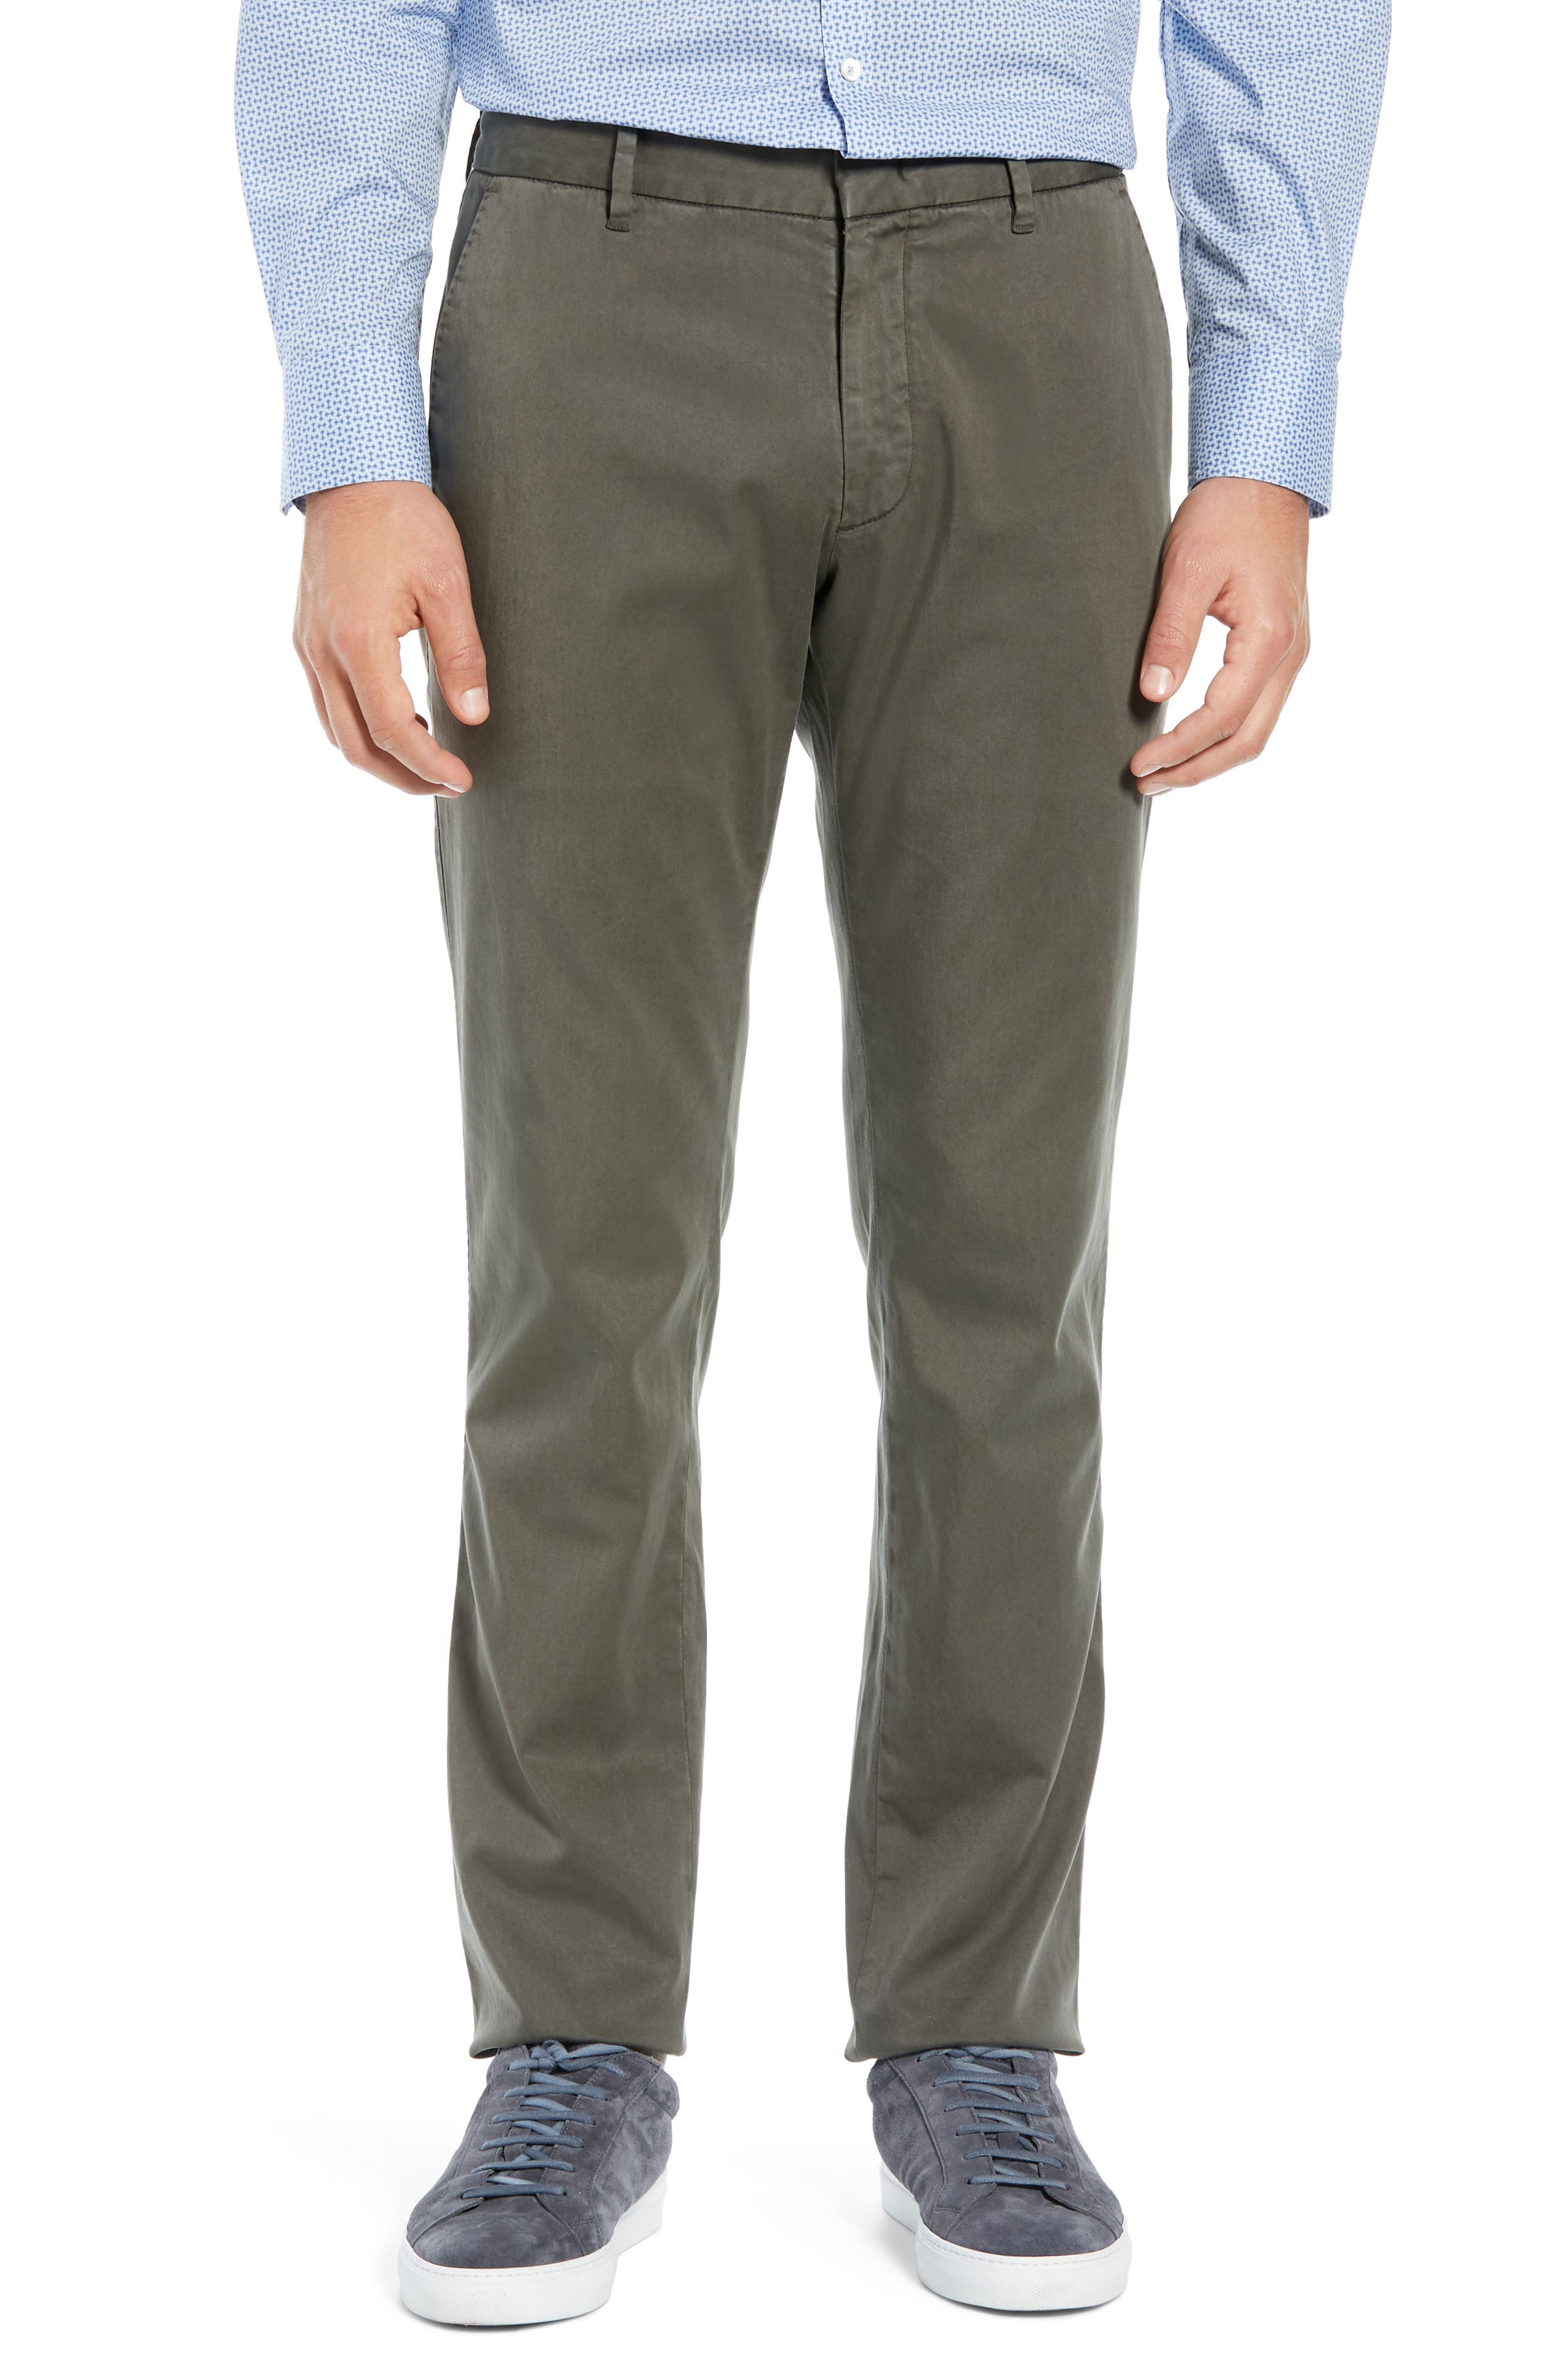 Aster Straight Fit Pants,                             Main thumbnail 1, color,                             OLIVE